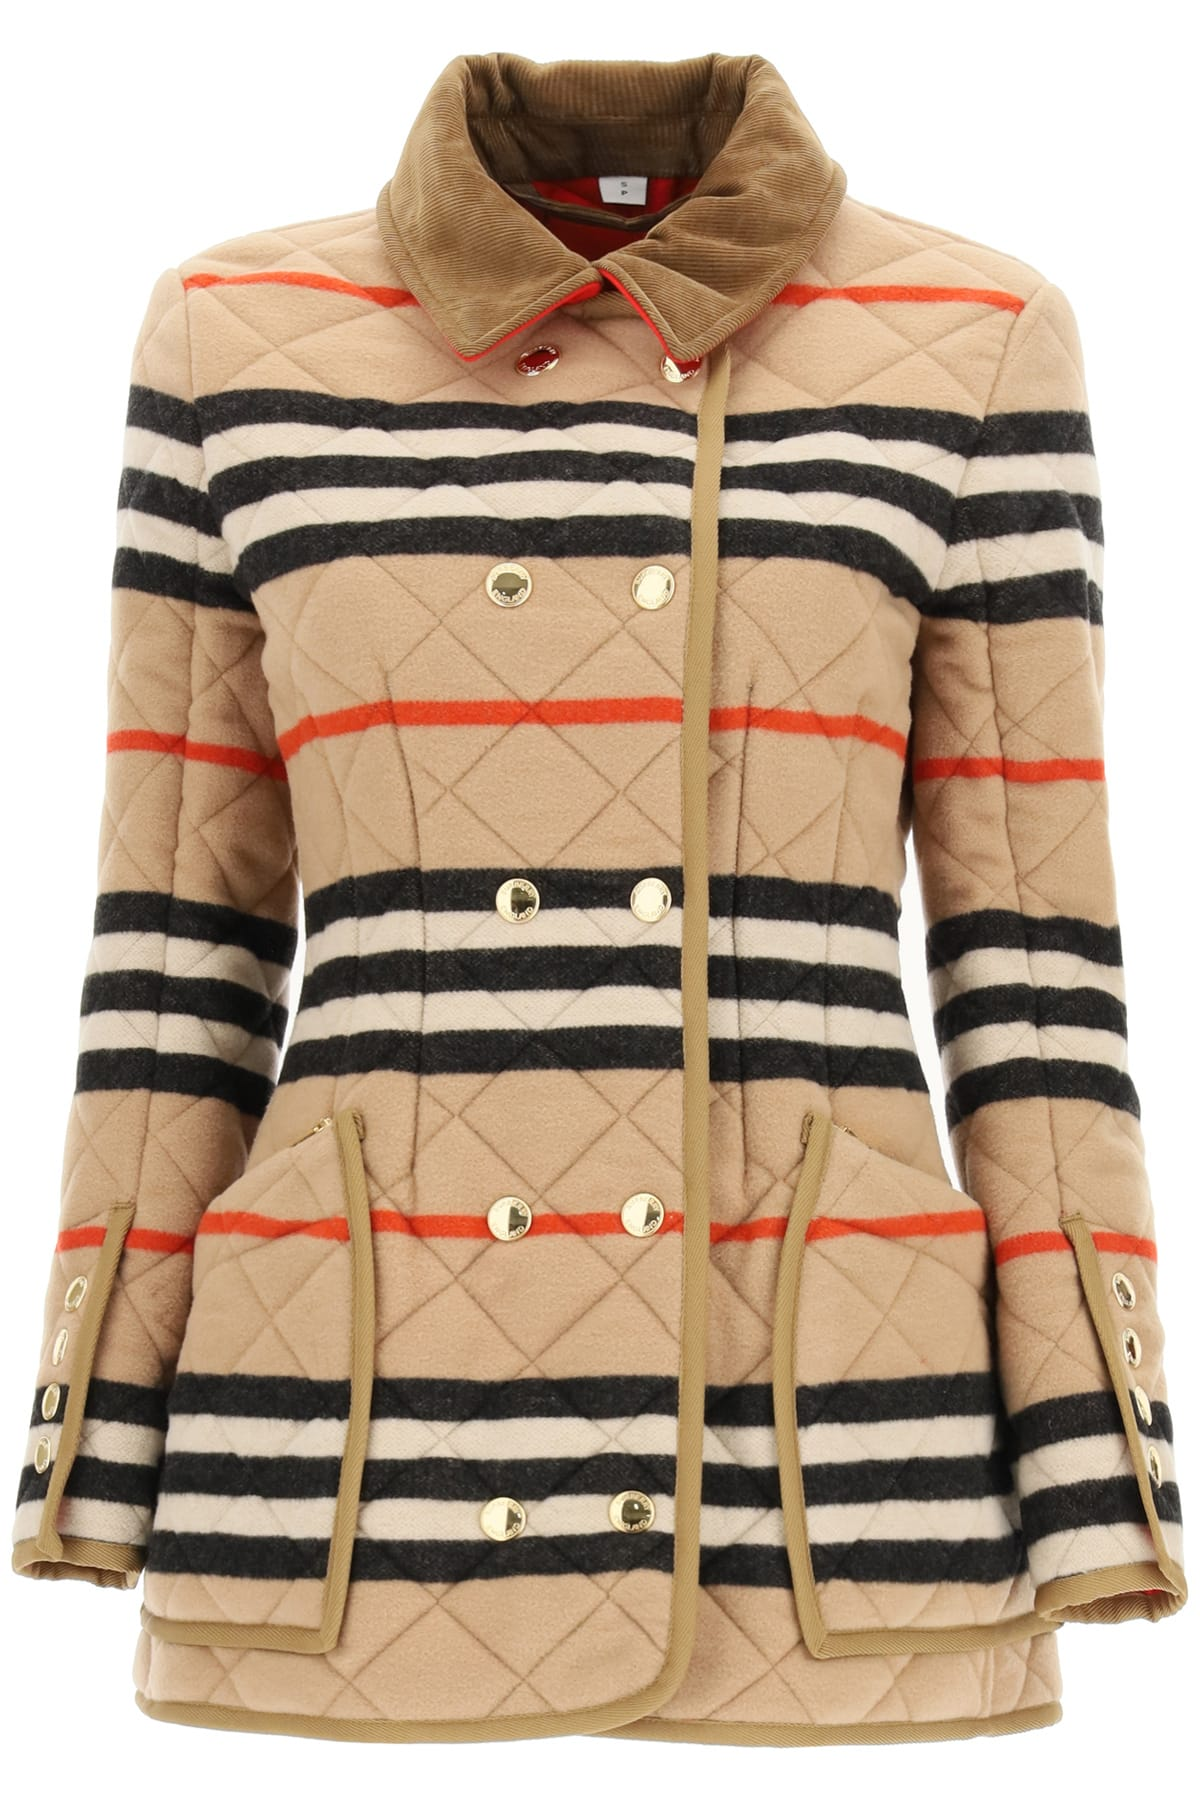 Burberry RIDING JACKET WITH STRIPED MOTIF